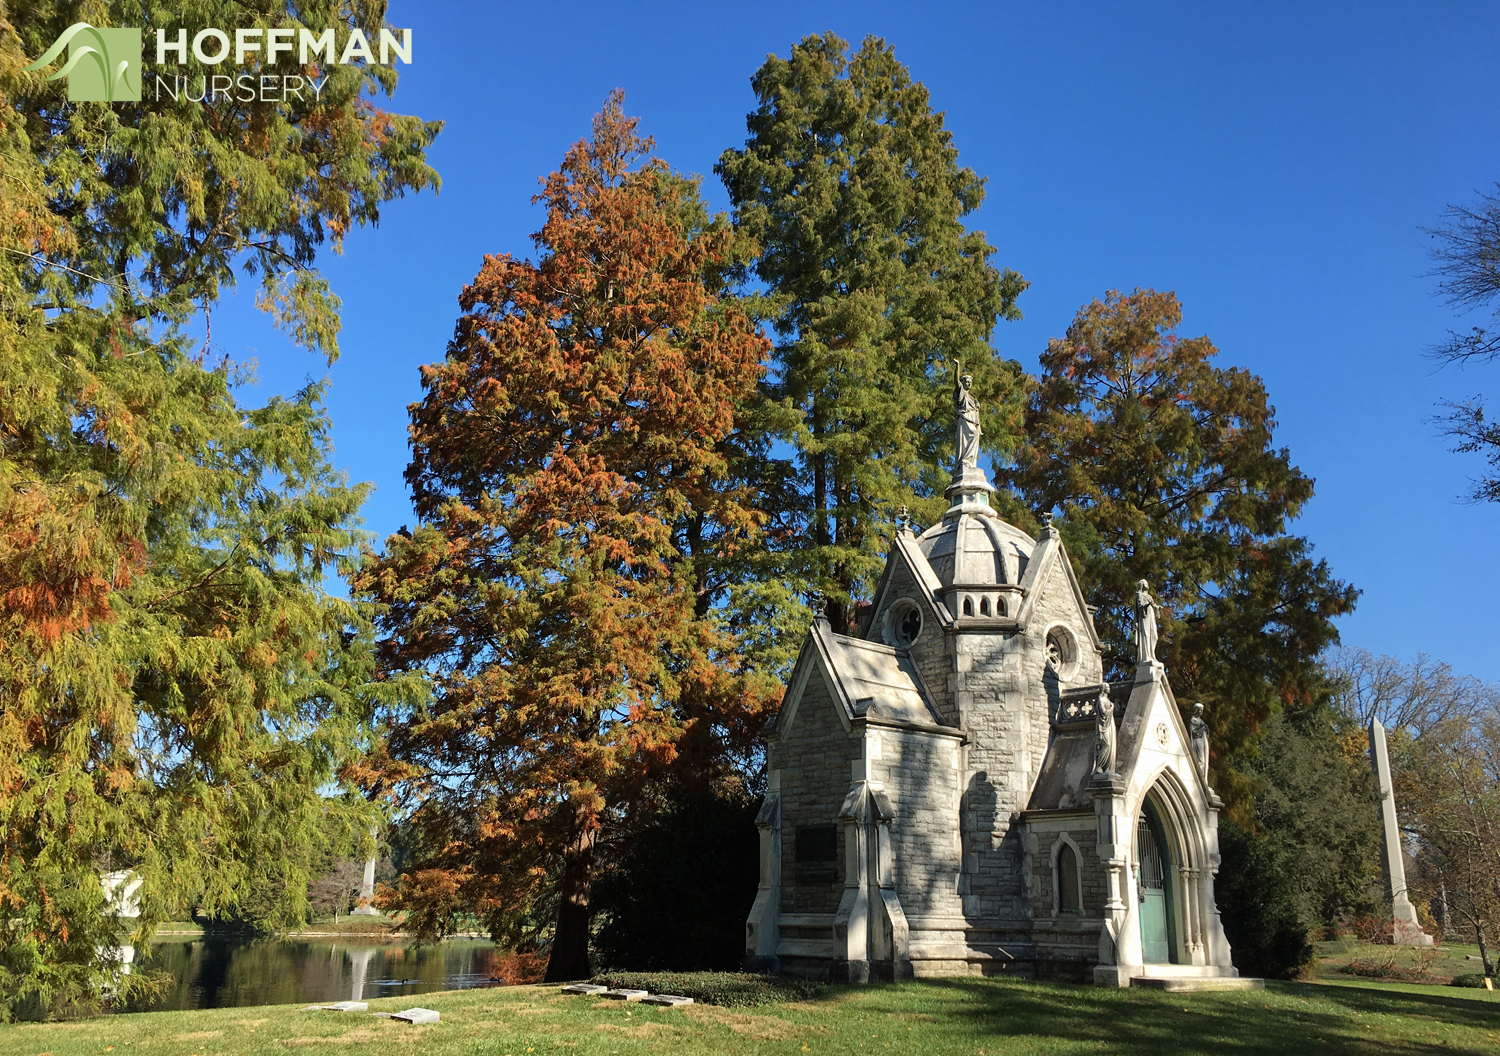 Spring Grove Cemetery & Arboretum has an extensive collection of aged trees and unusual specimens. Its beautiful memorial structures frame the landscape and highlight the beautiful fall colors.